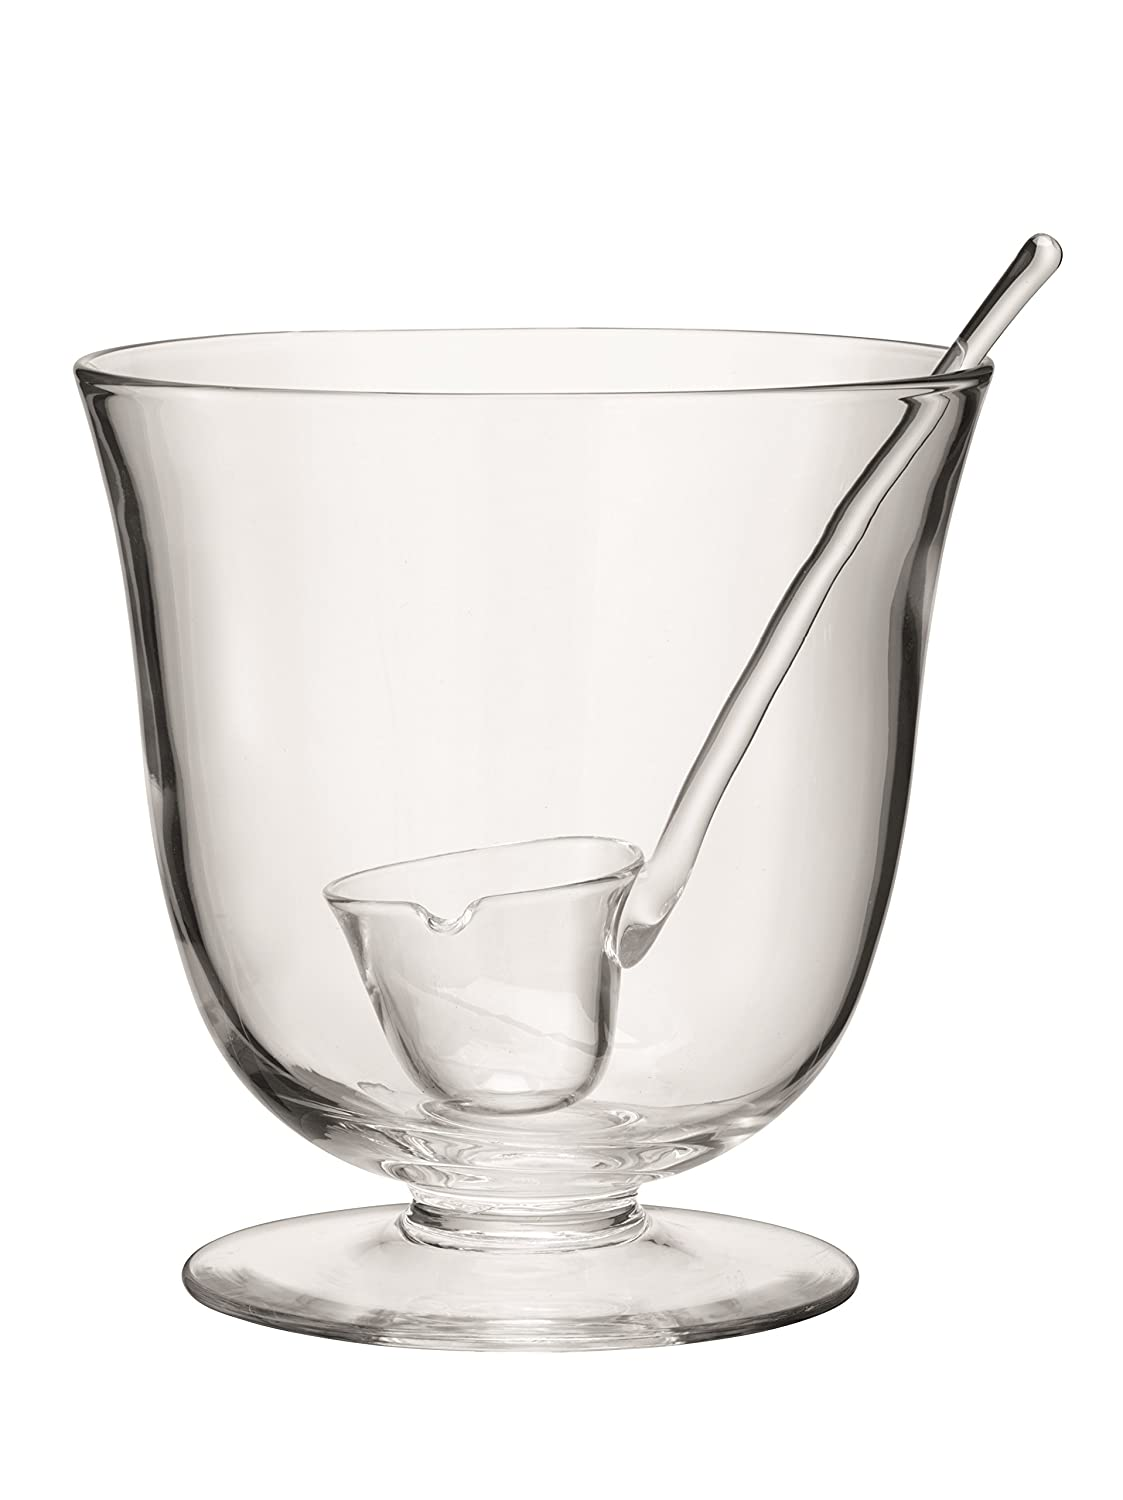 LSA International Serve Punchbowl & Ladle, 9.75, Clear 9.75 G399-25-301